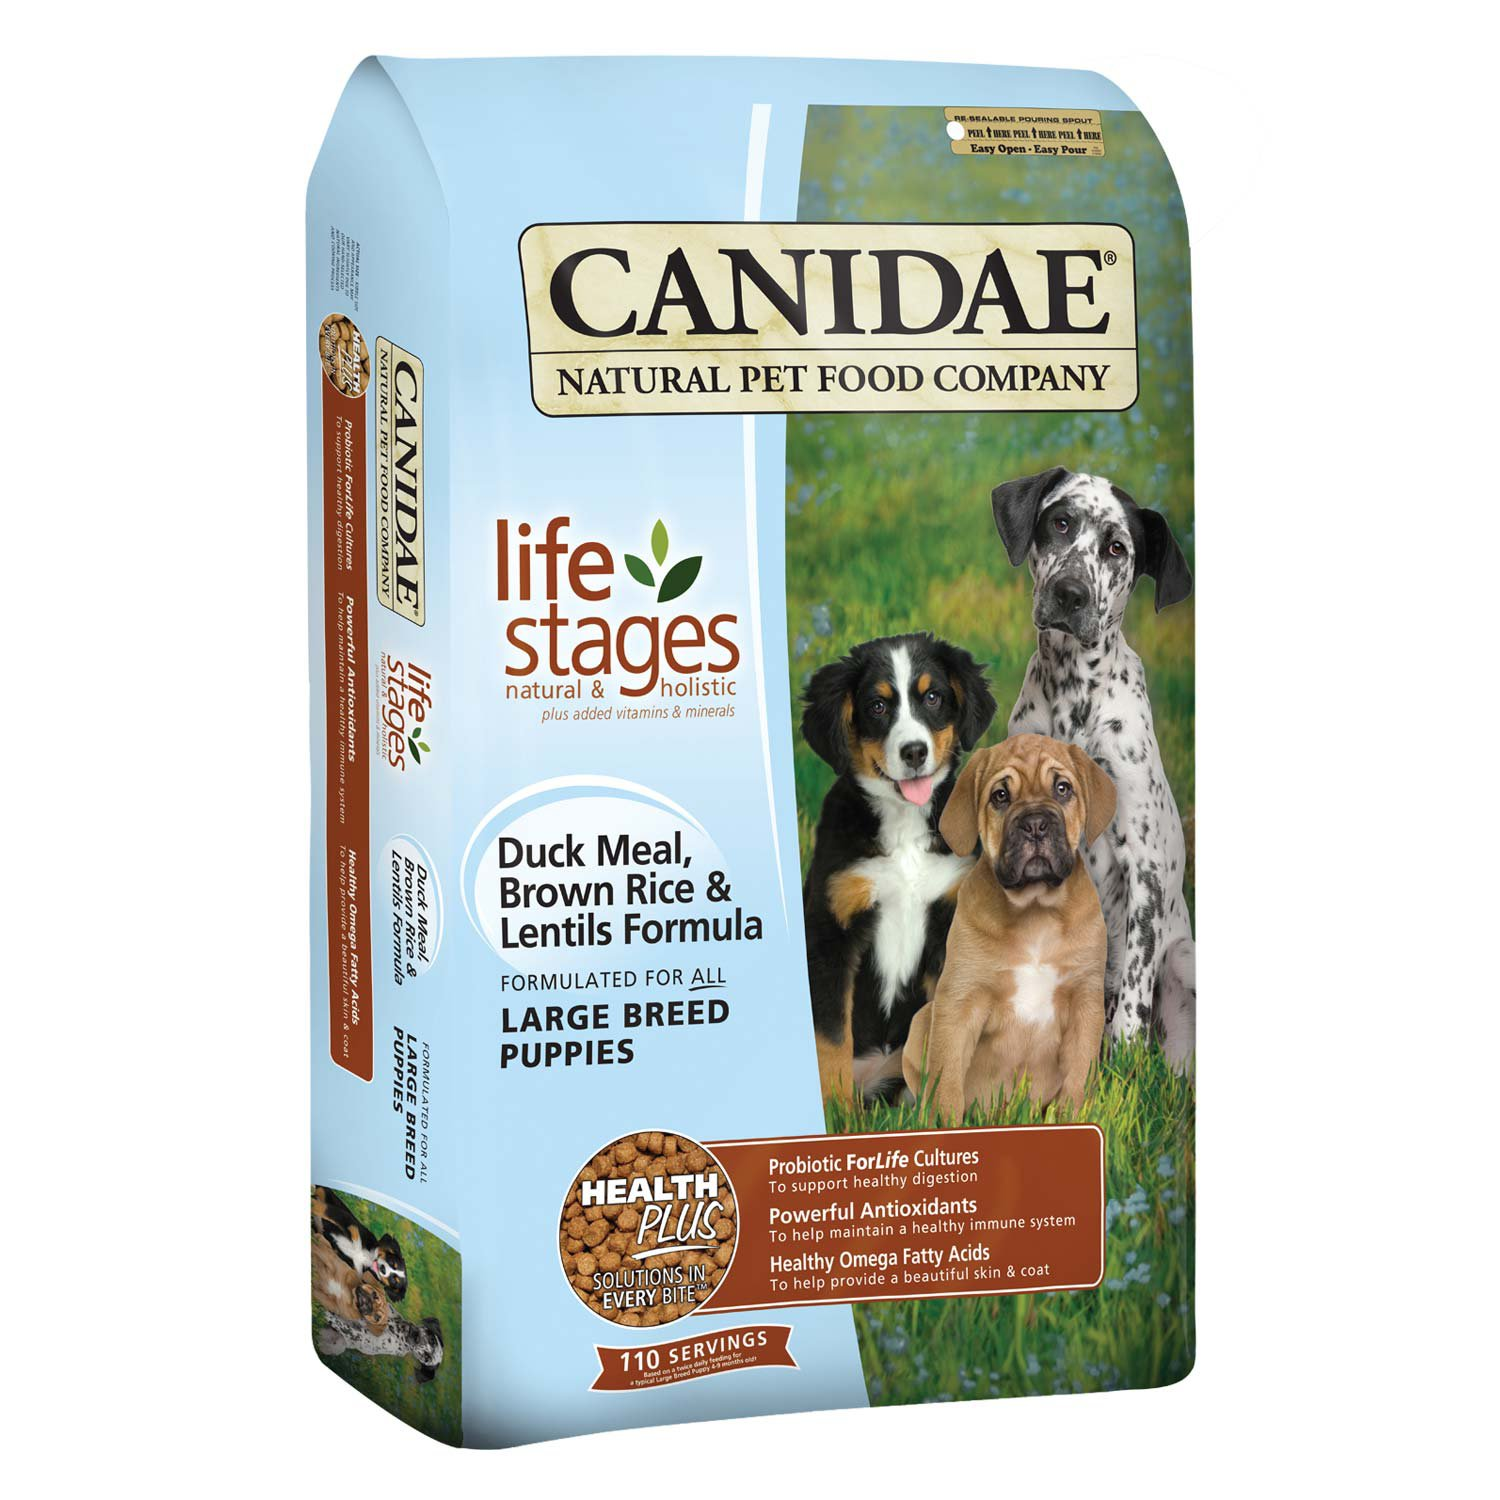 Is Canidae High Quality Dog Food